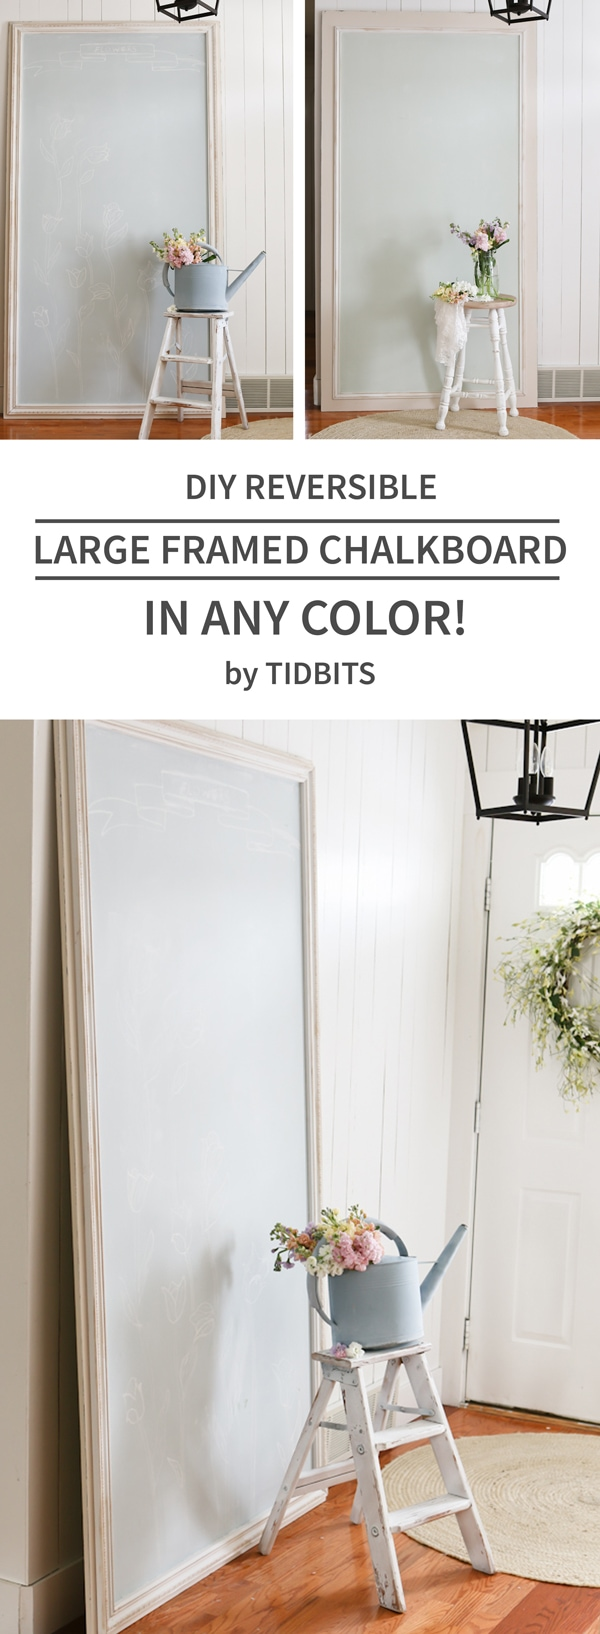 DIY reversible large framed chalkboard + learn how to make chalkboard paint in any color!